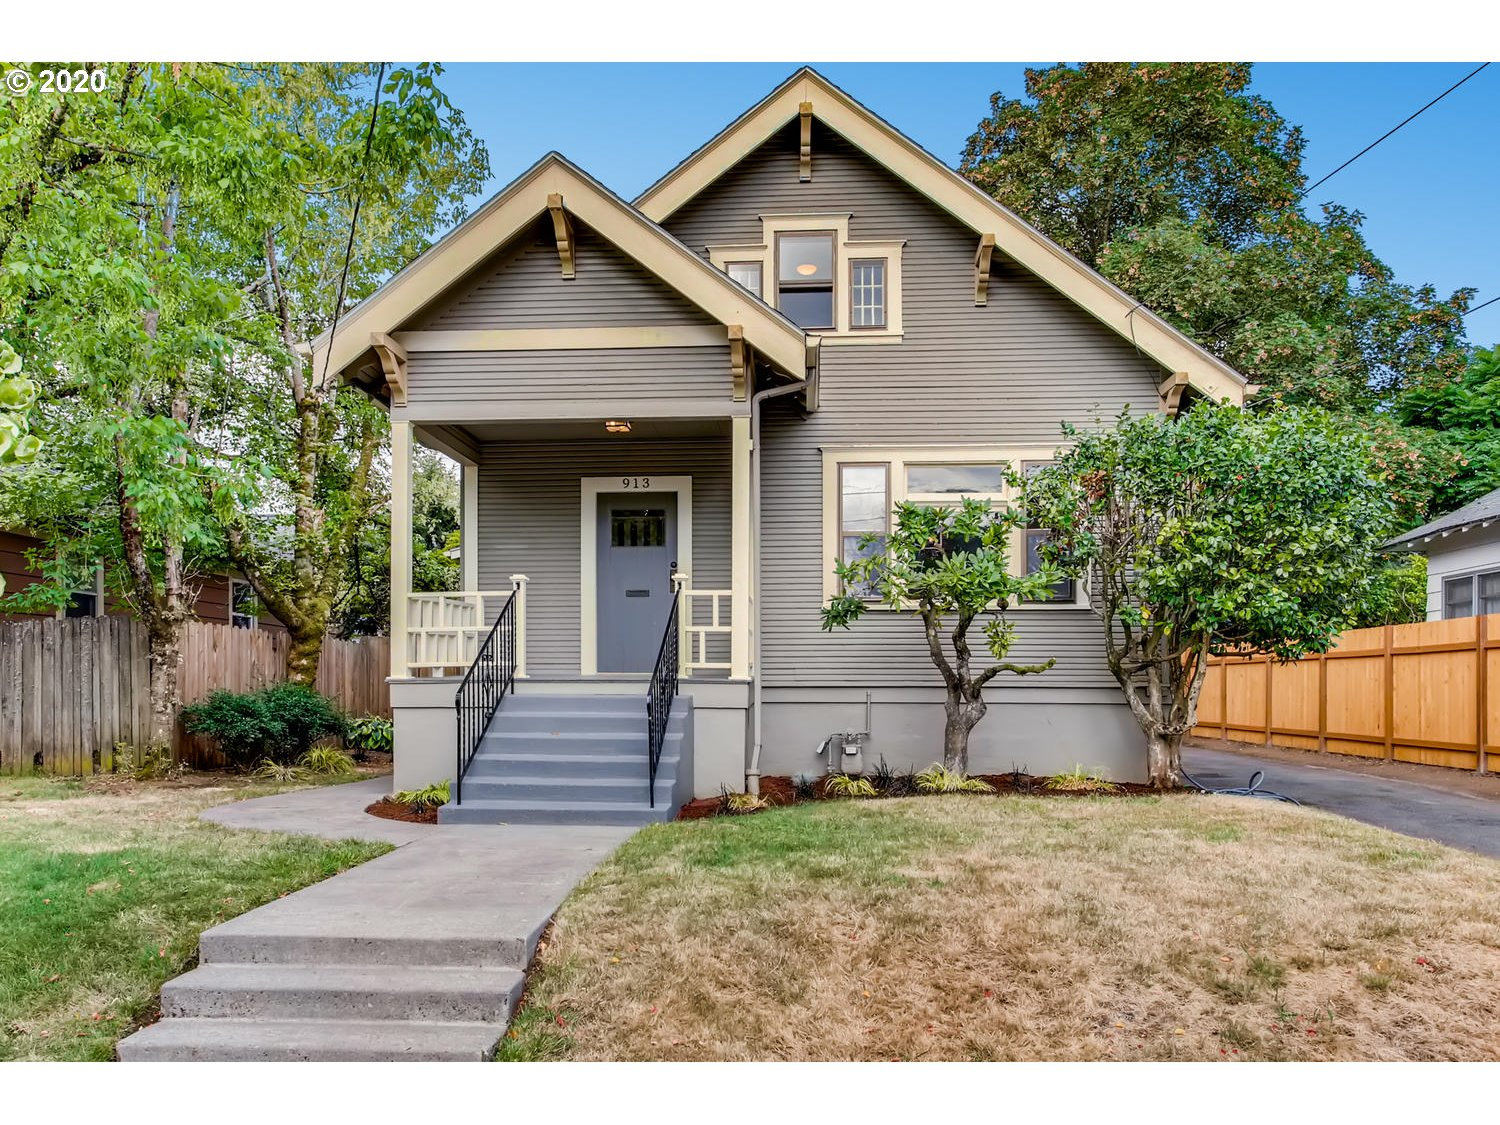 This is a charming 1912 American Bungalow! This sun drenched home is 2200sf, 3 beds, 1 bath & its stunning architecture welcomes your friends & family with its front porch & adorned vestibule entry. The home features high ceilings, generous room sizes, loads of period moldings, original bay windows, corbels, refinished fir floors & a large grassy yard with a perfectly placed patio. The home is heated with a gas & located on a fully fenced oversized lot in a great neighborhood! Hurry on this one!